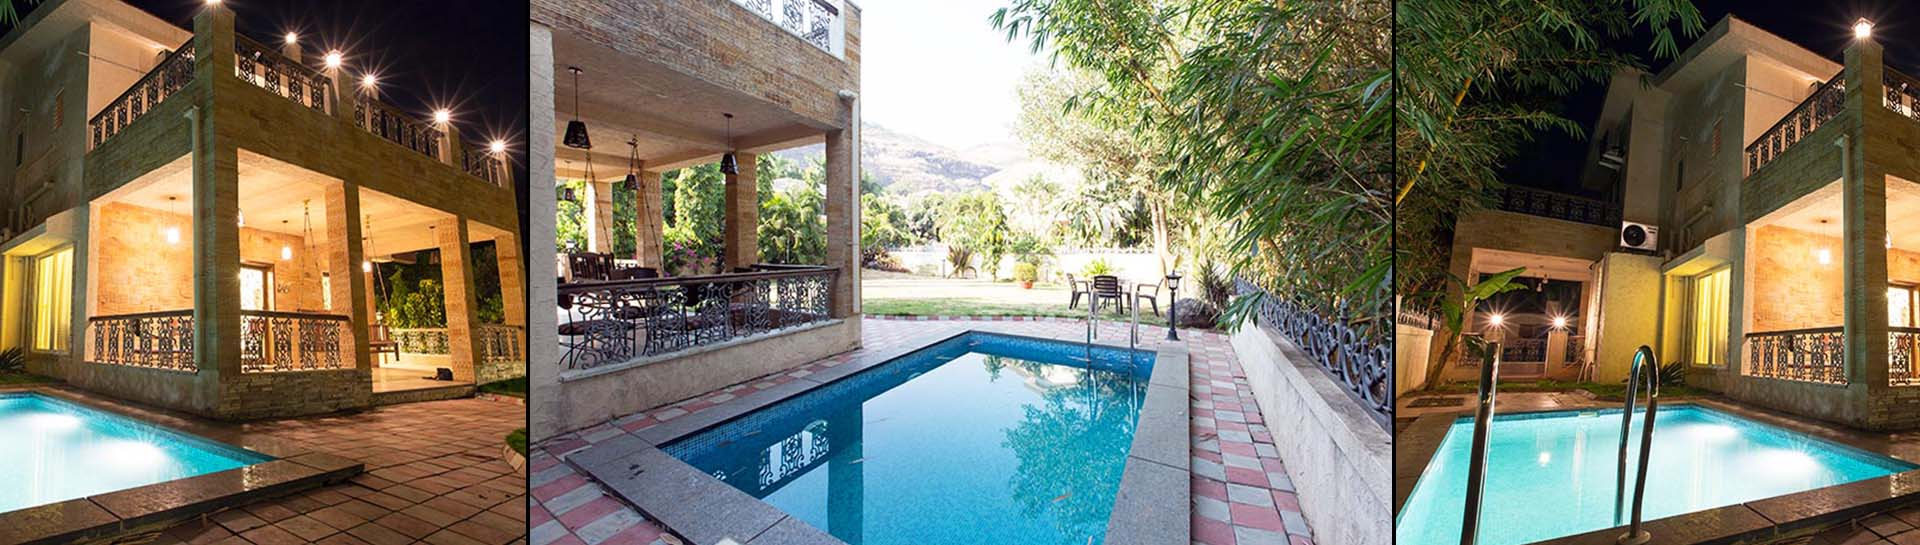 Luxurious 4 bhk bungalow with private pool in lonavala for Bunglows on rent in lonavala with swimming pool